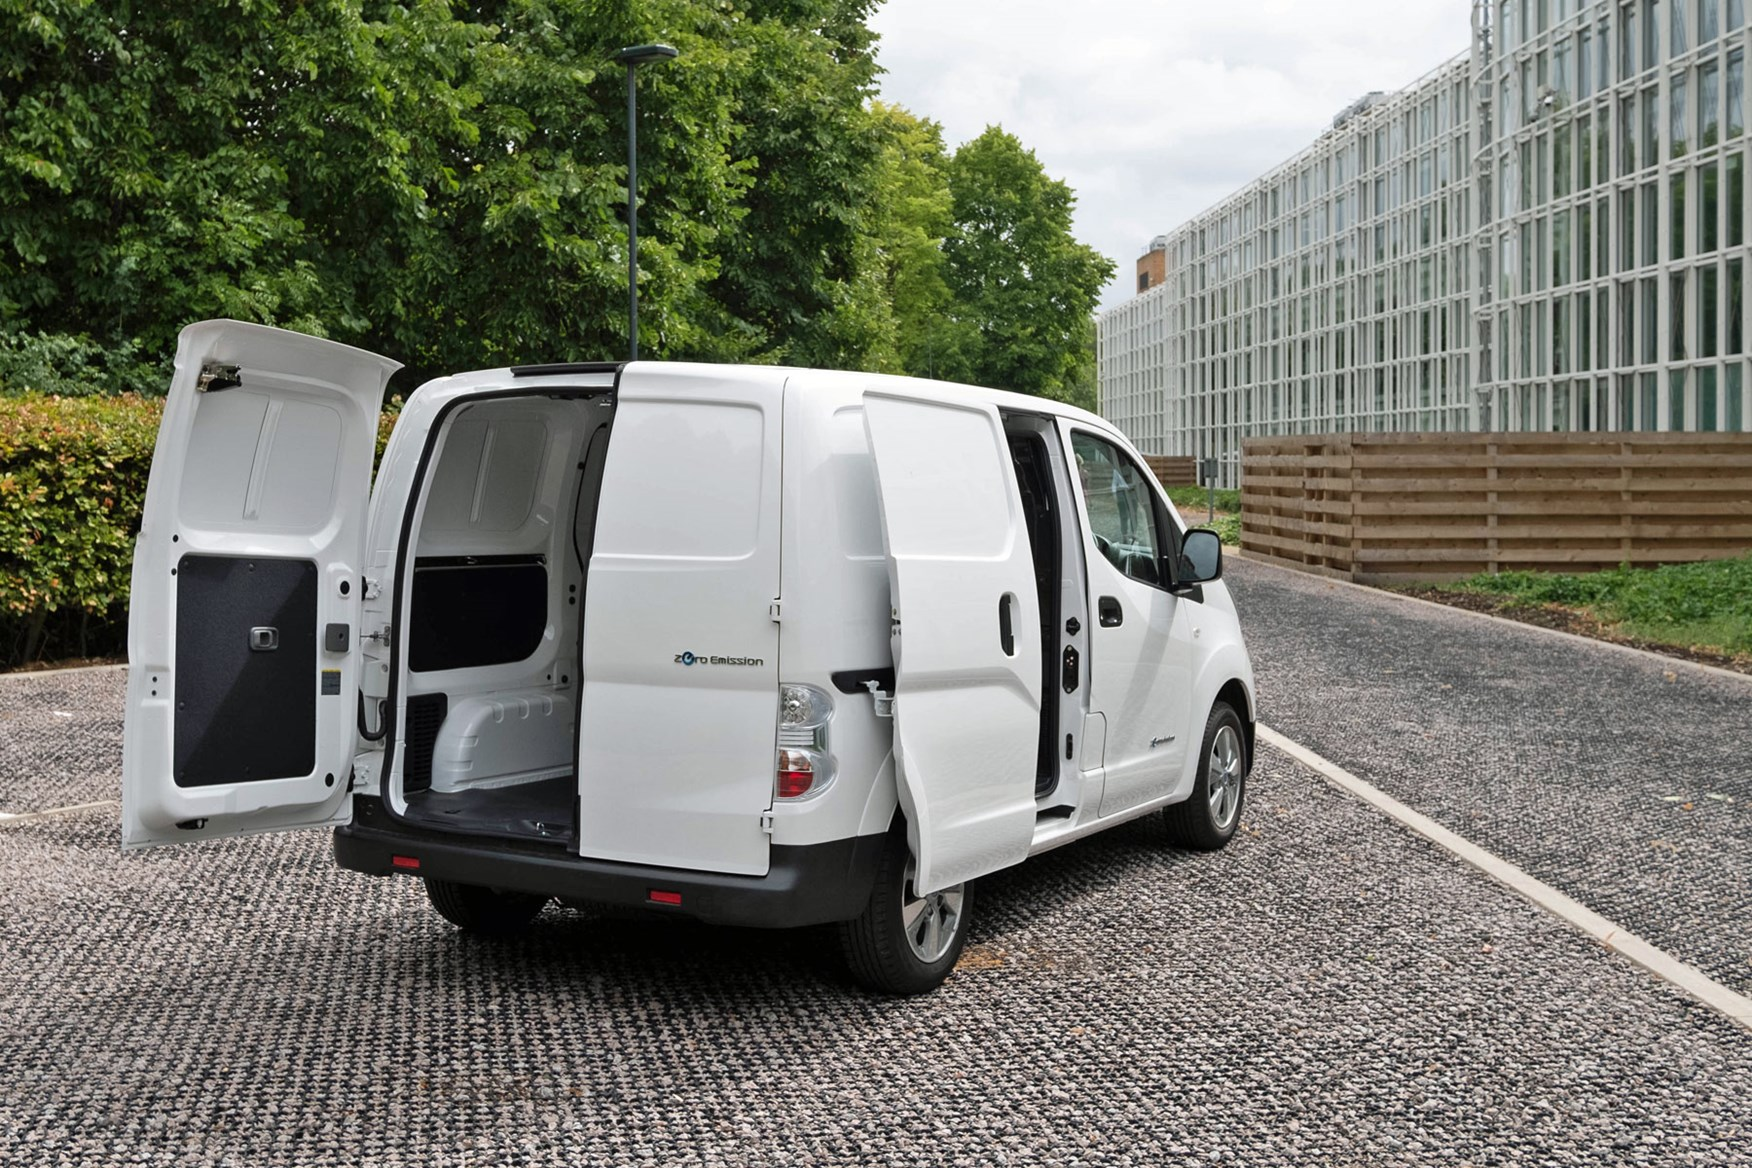 Nissan e-NV200 load area dimensions - rear view, doors open, 2020